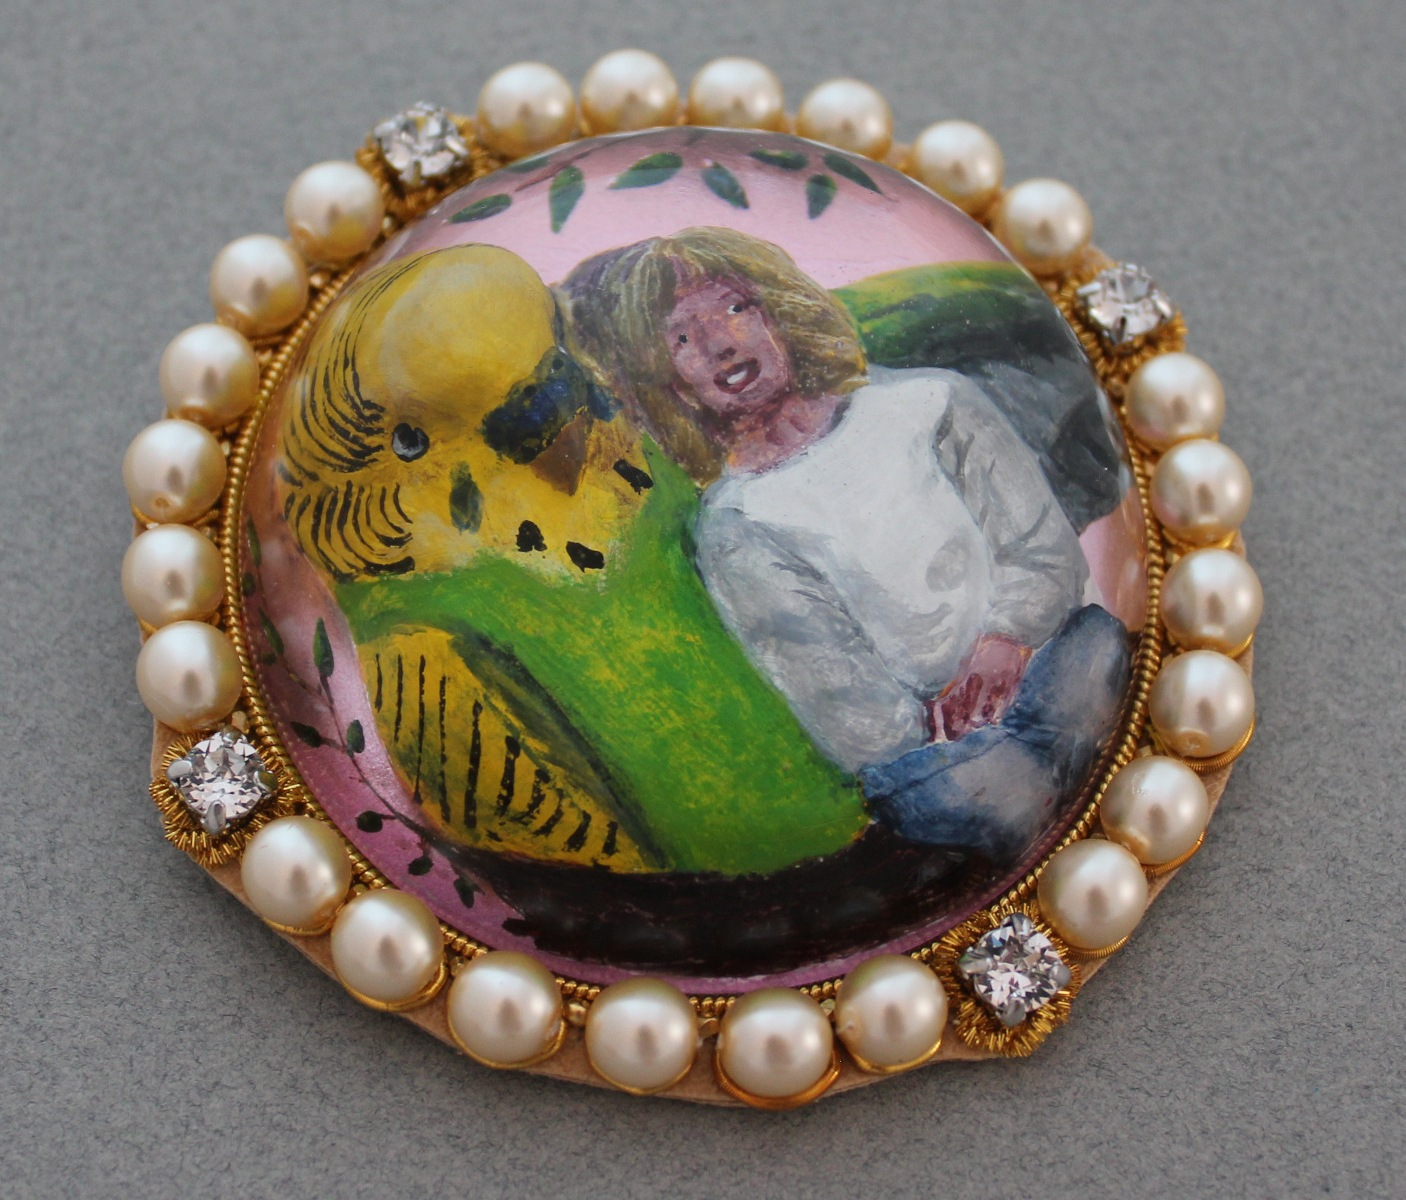 essex crystal reverse intaglio showing girl and budgie